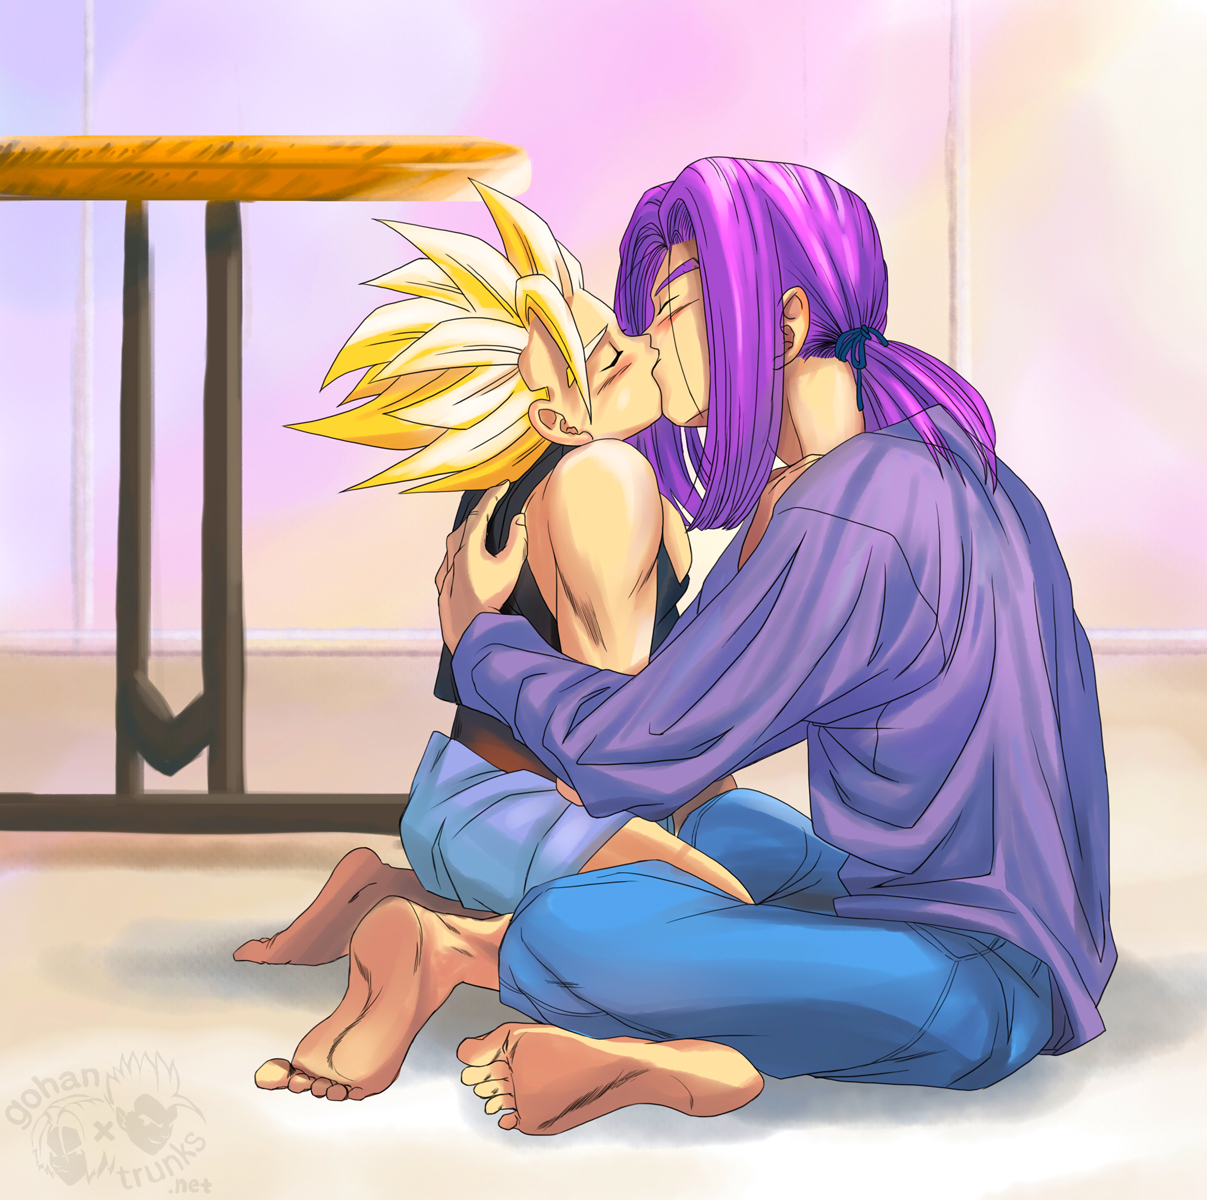 Gohan and trunks have sex